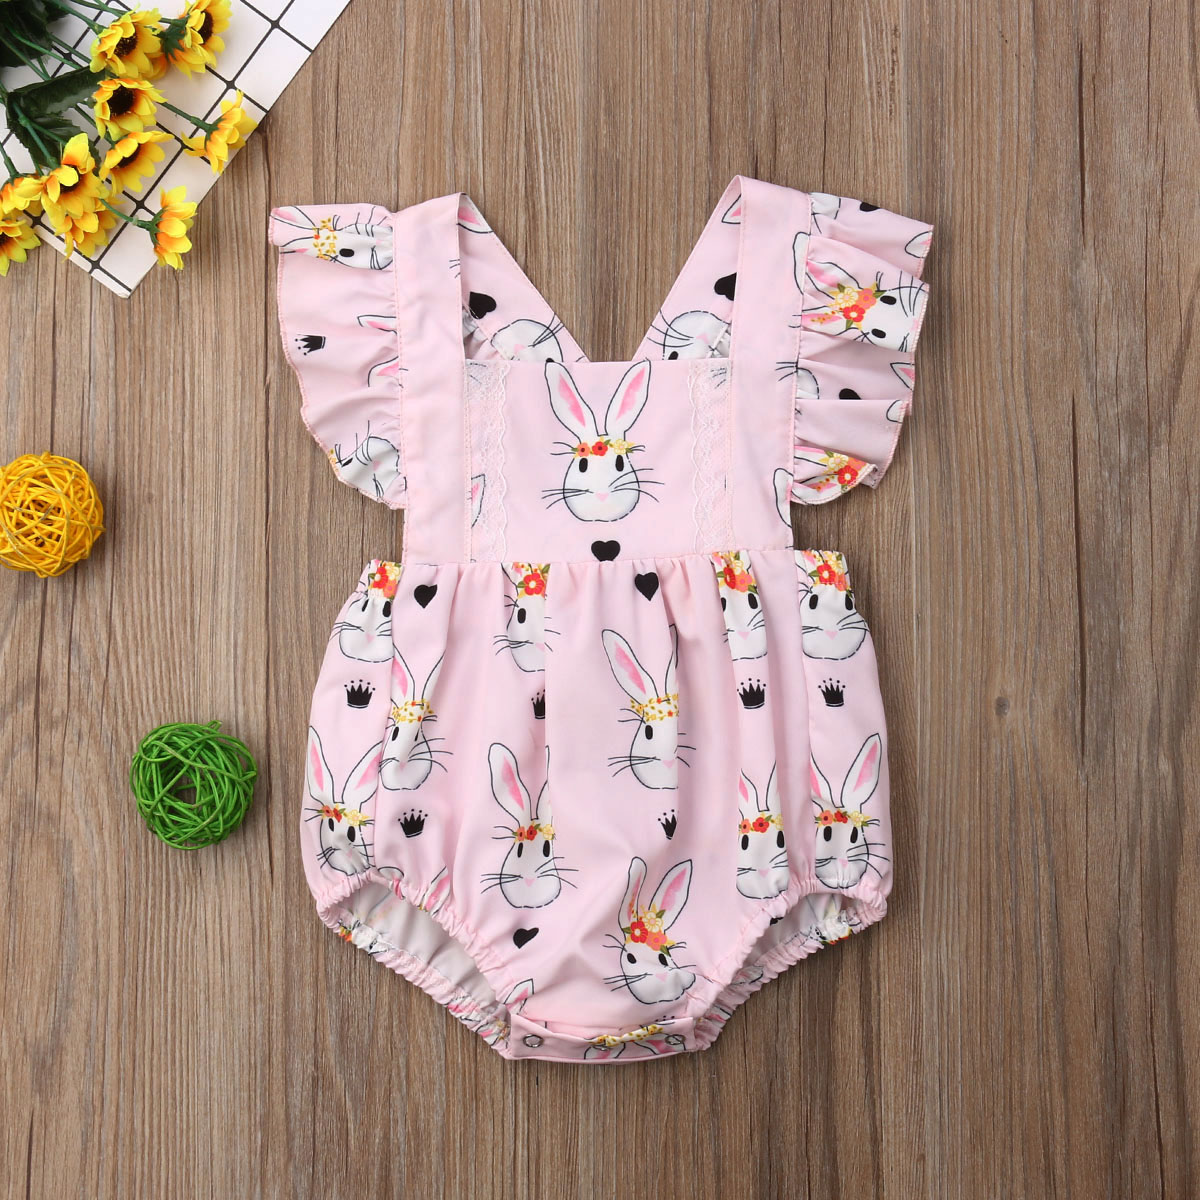 Pudcoco Newborn Baby Girl Clothes Cartoon Rabbit Print Sleeveless Romper Jumpsuit One-Piece Outfit Sunsuit Clothes